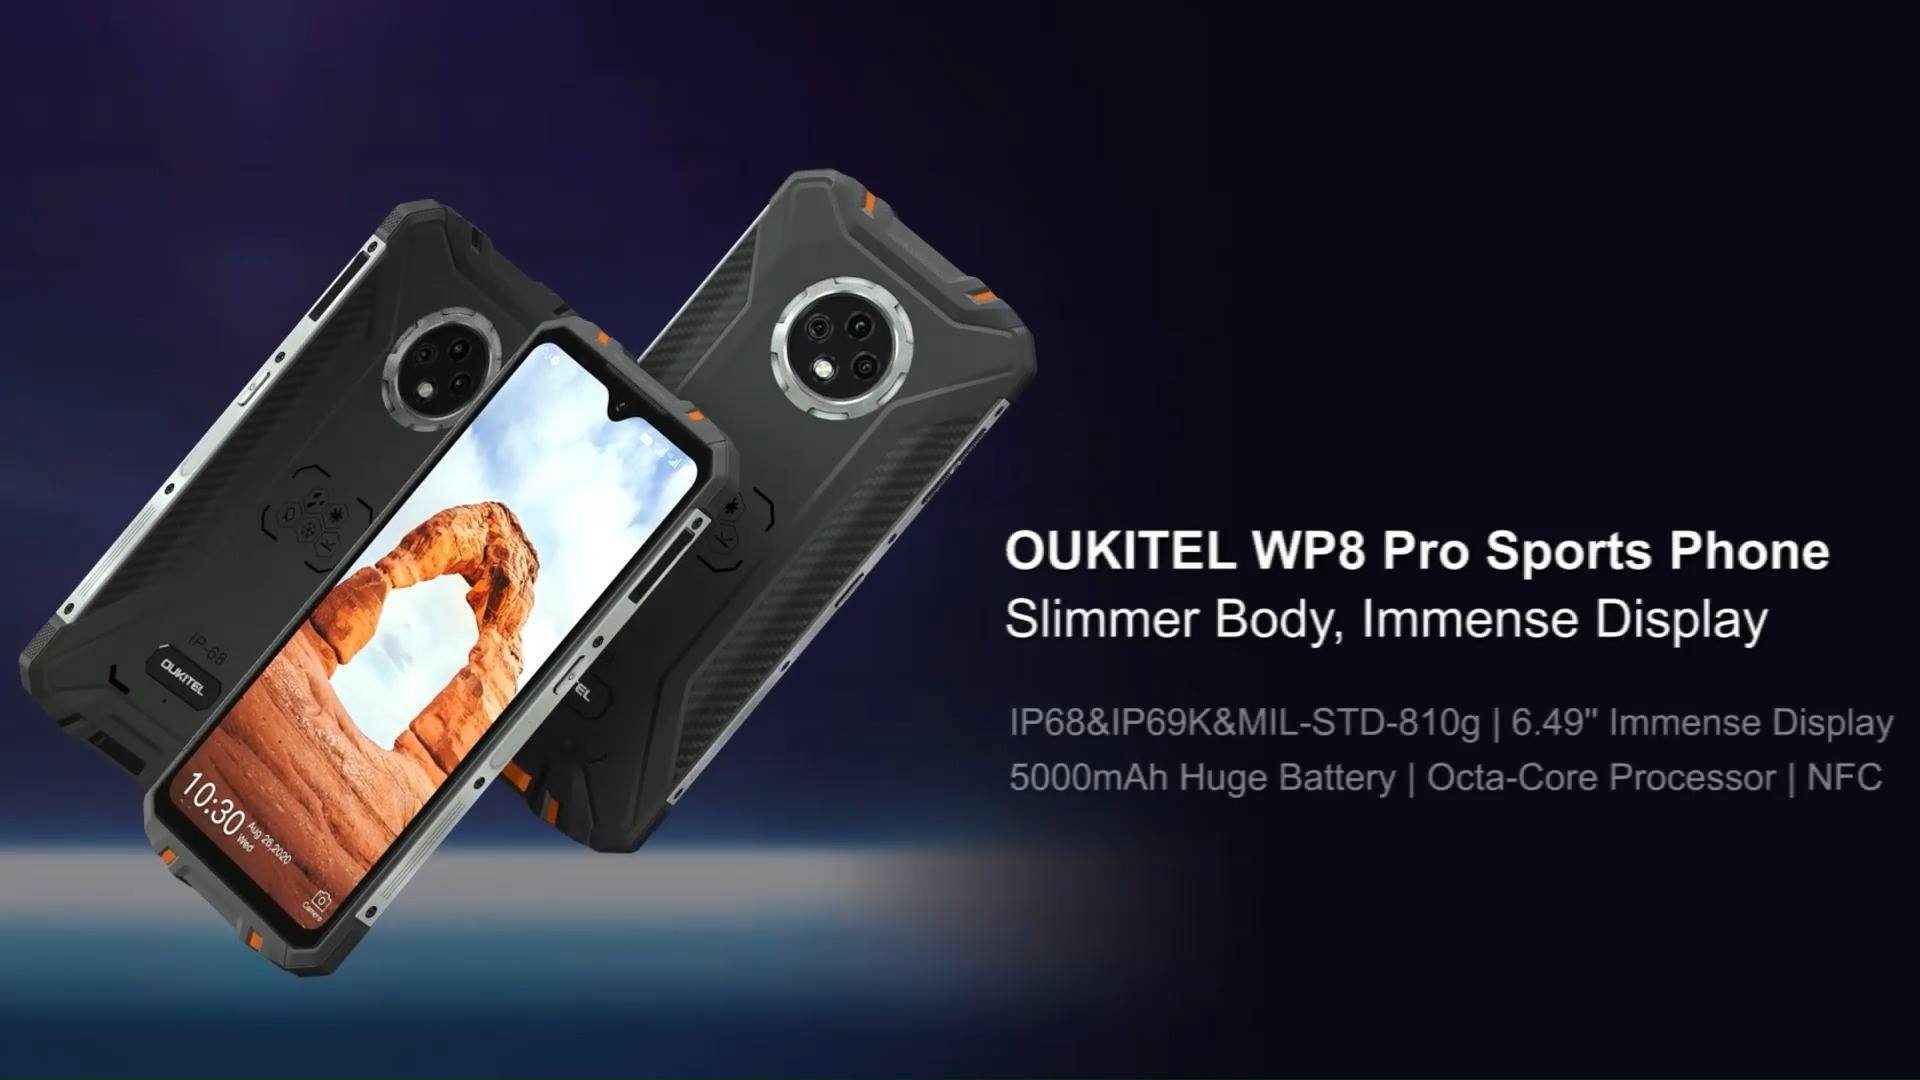 Introducing the best #SportsPhone of 2020, #OUKITEL #WP8Pro🎉 Featuring: